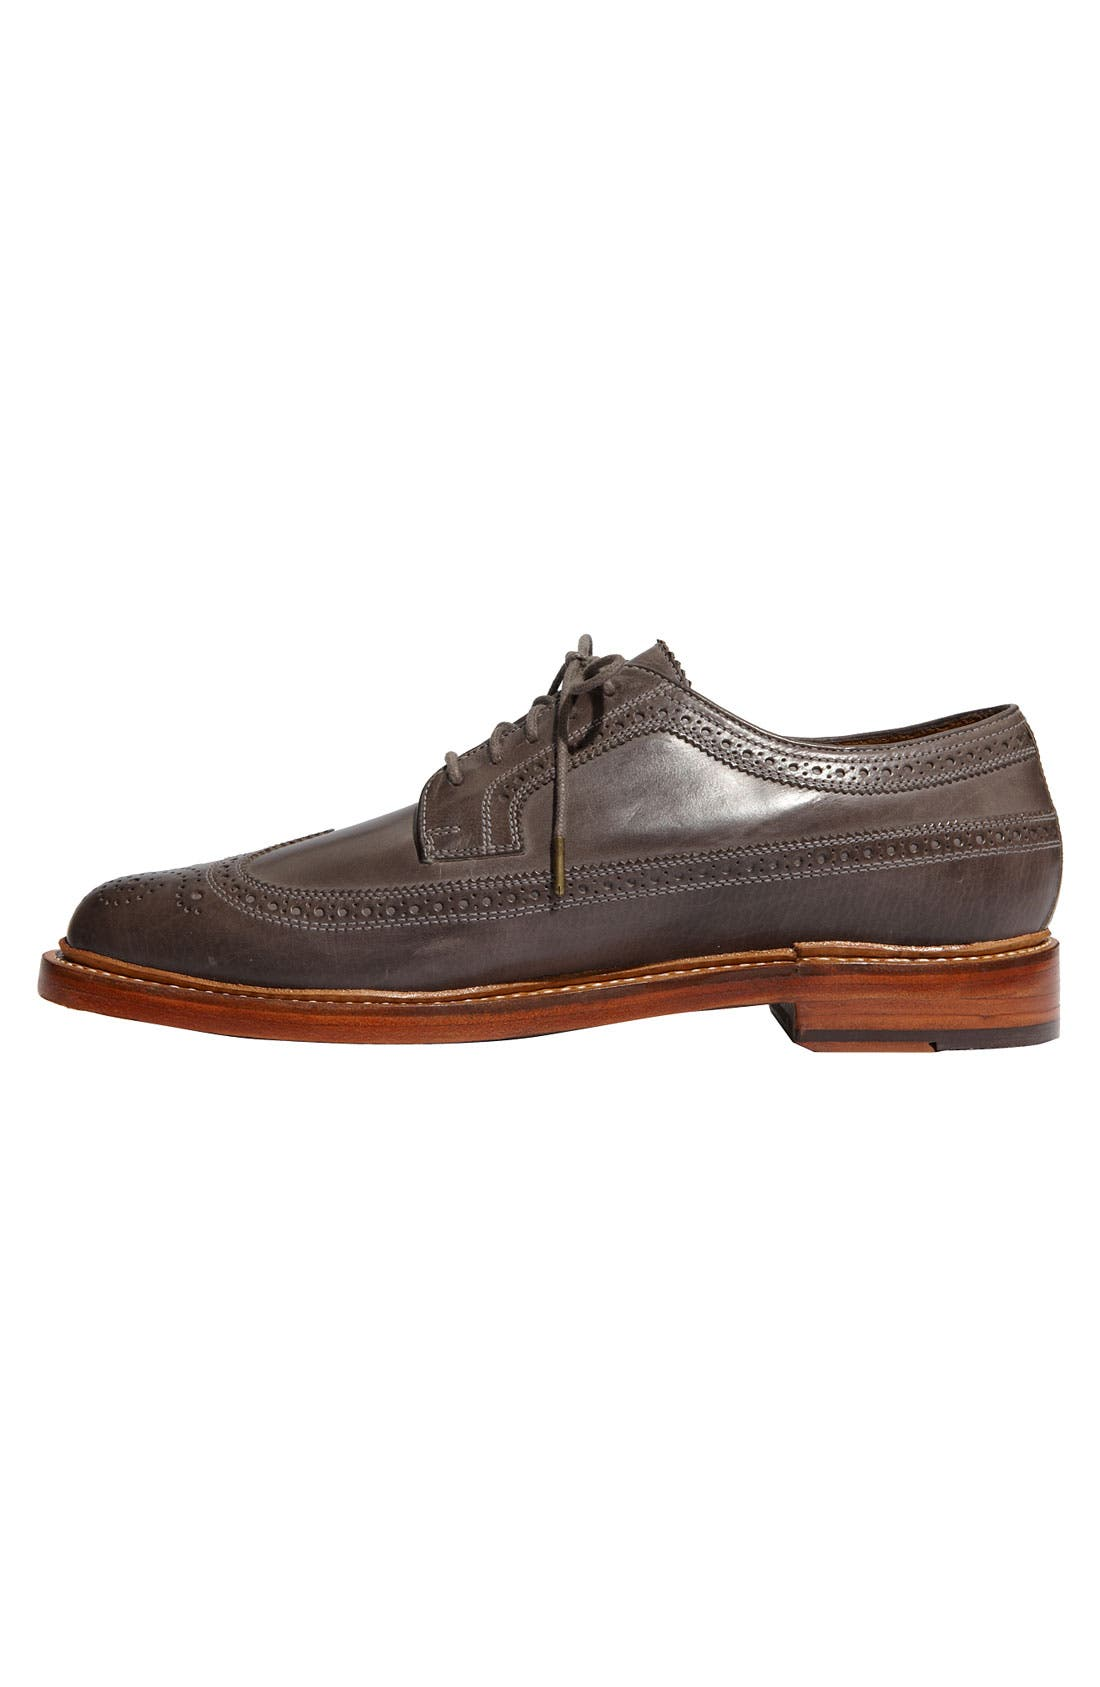 Alternate Image 2  - Florsheim 'Veblen' Wingtip Oxford